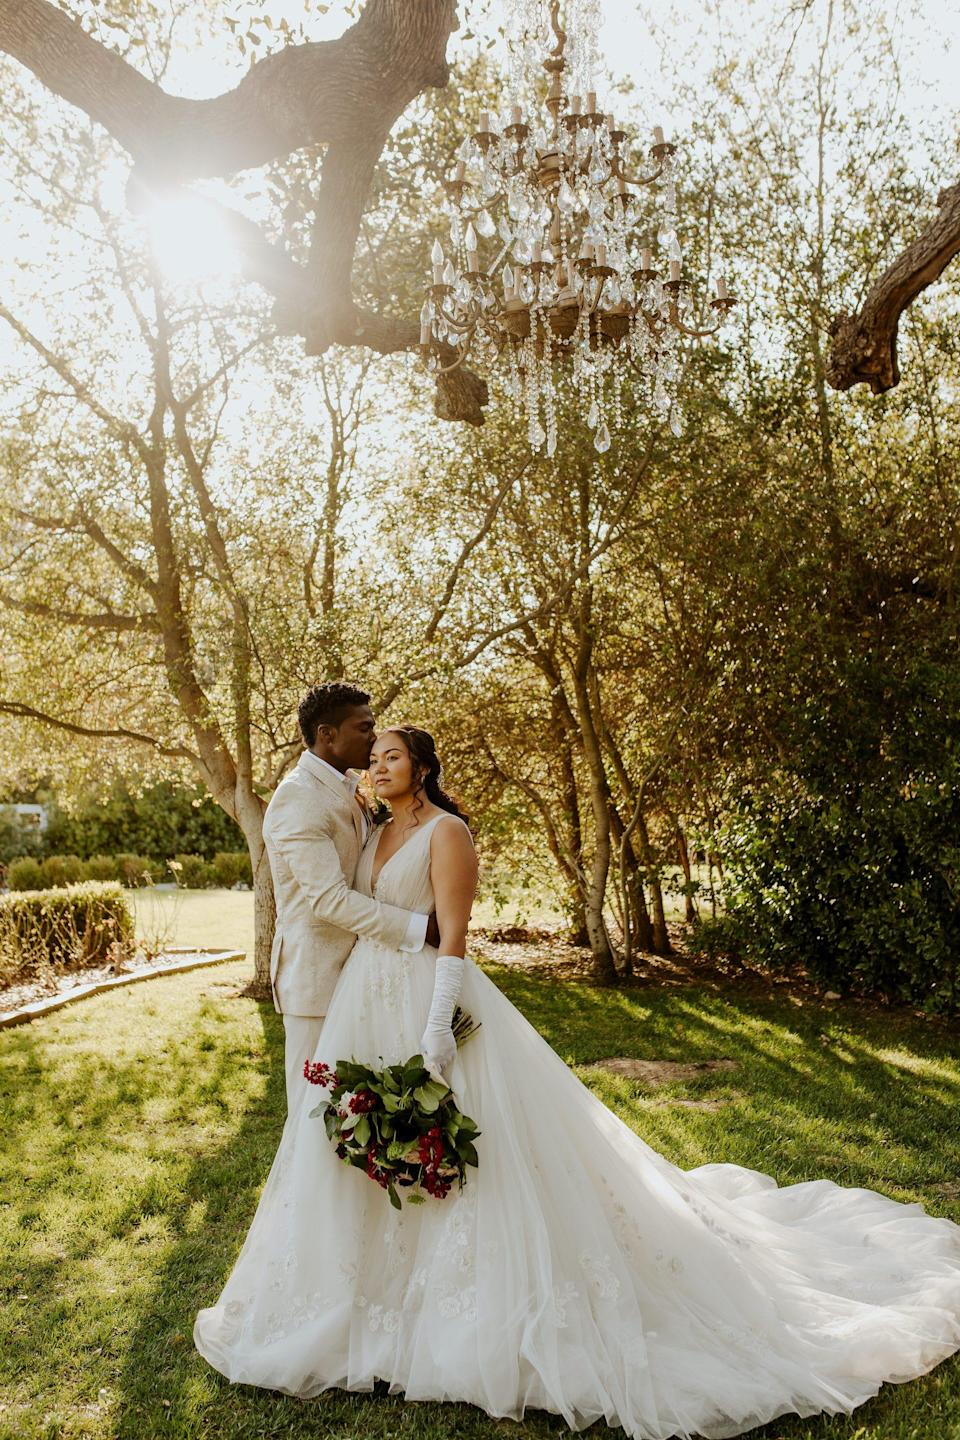 A bride and groom embrace in a field surrounded by trees.